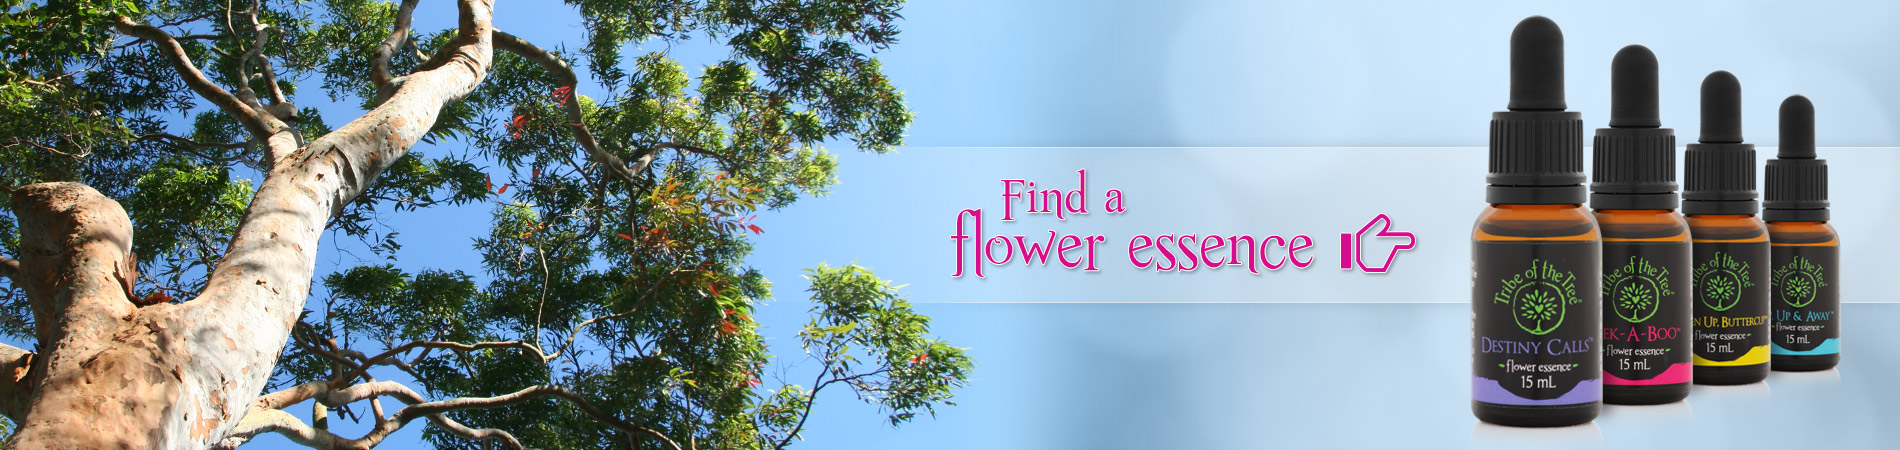 Find a Flower Essence